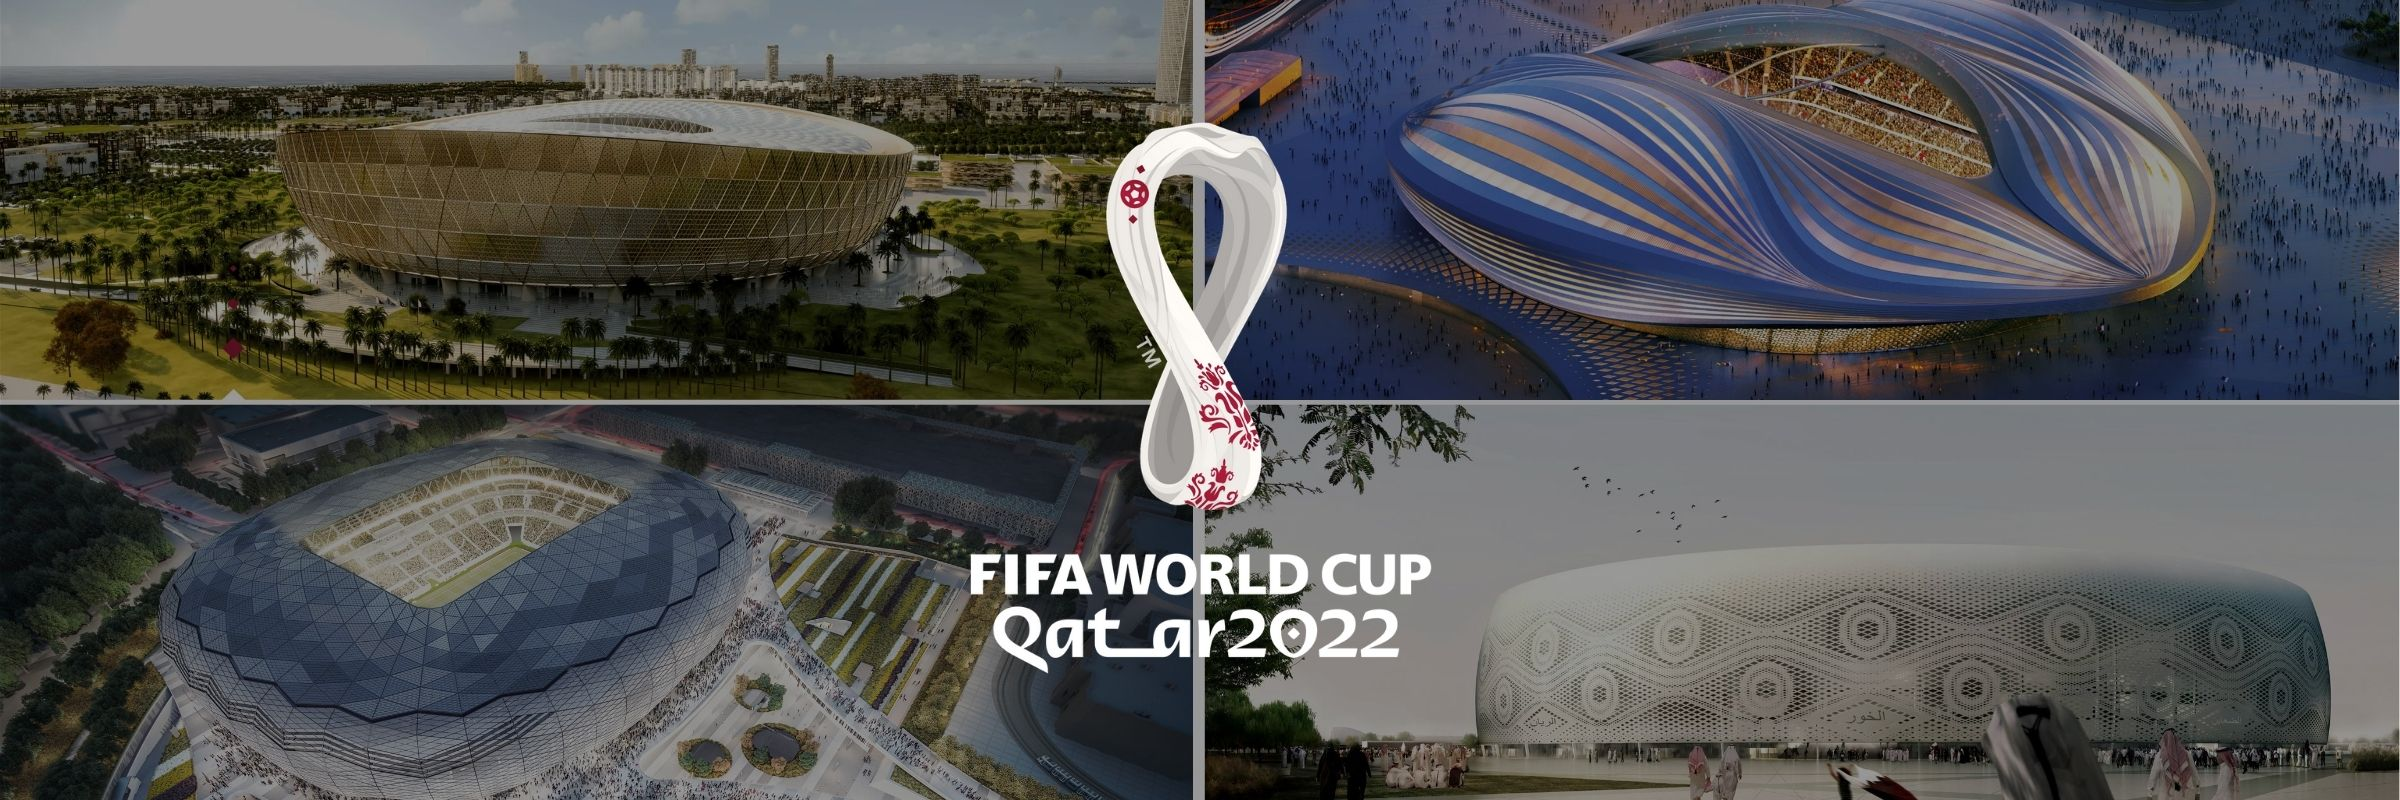 2022-World-Cup-Stadiums-Banner